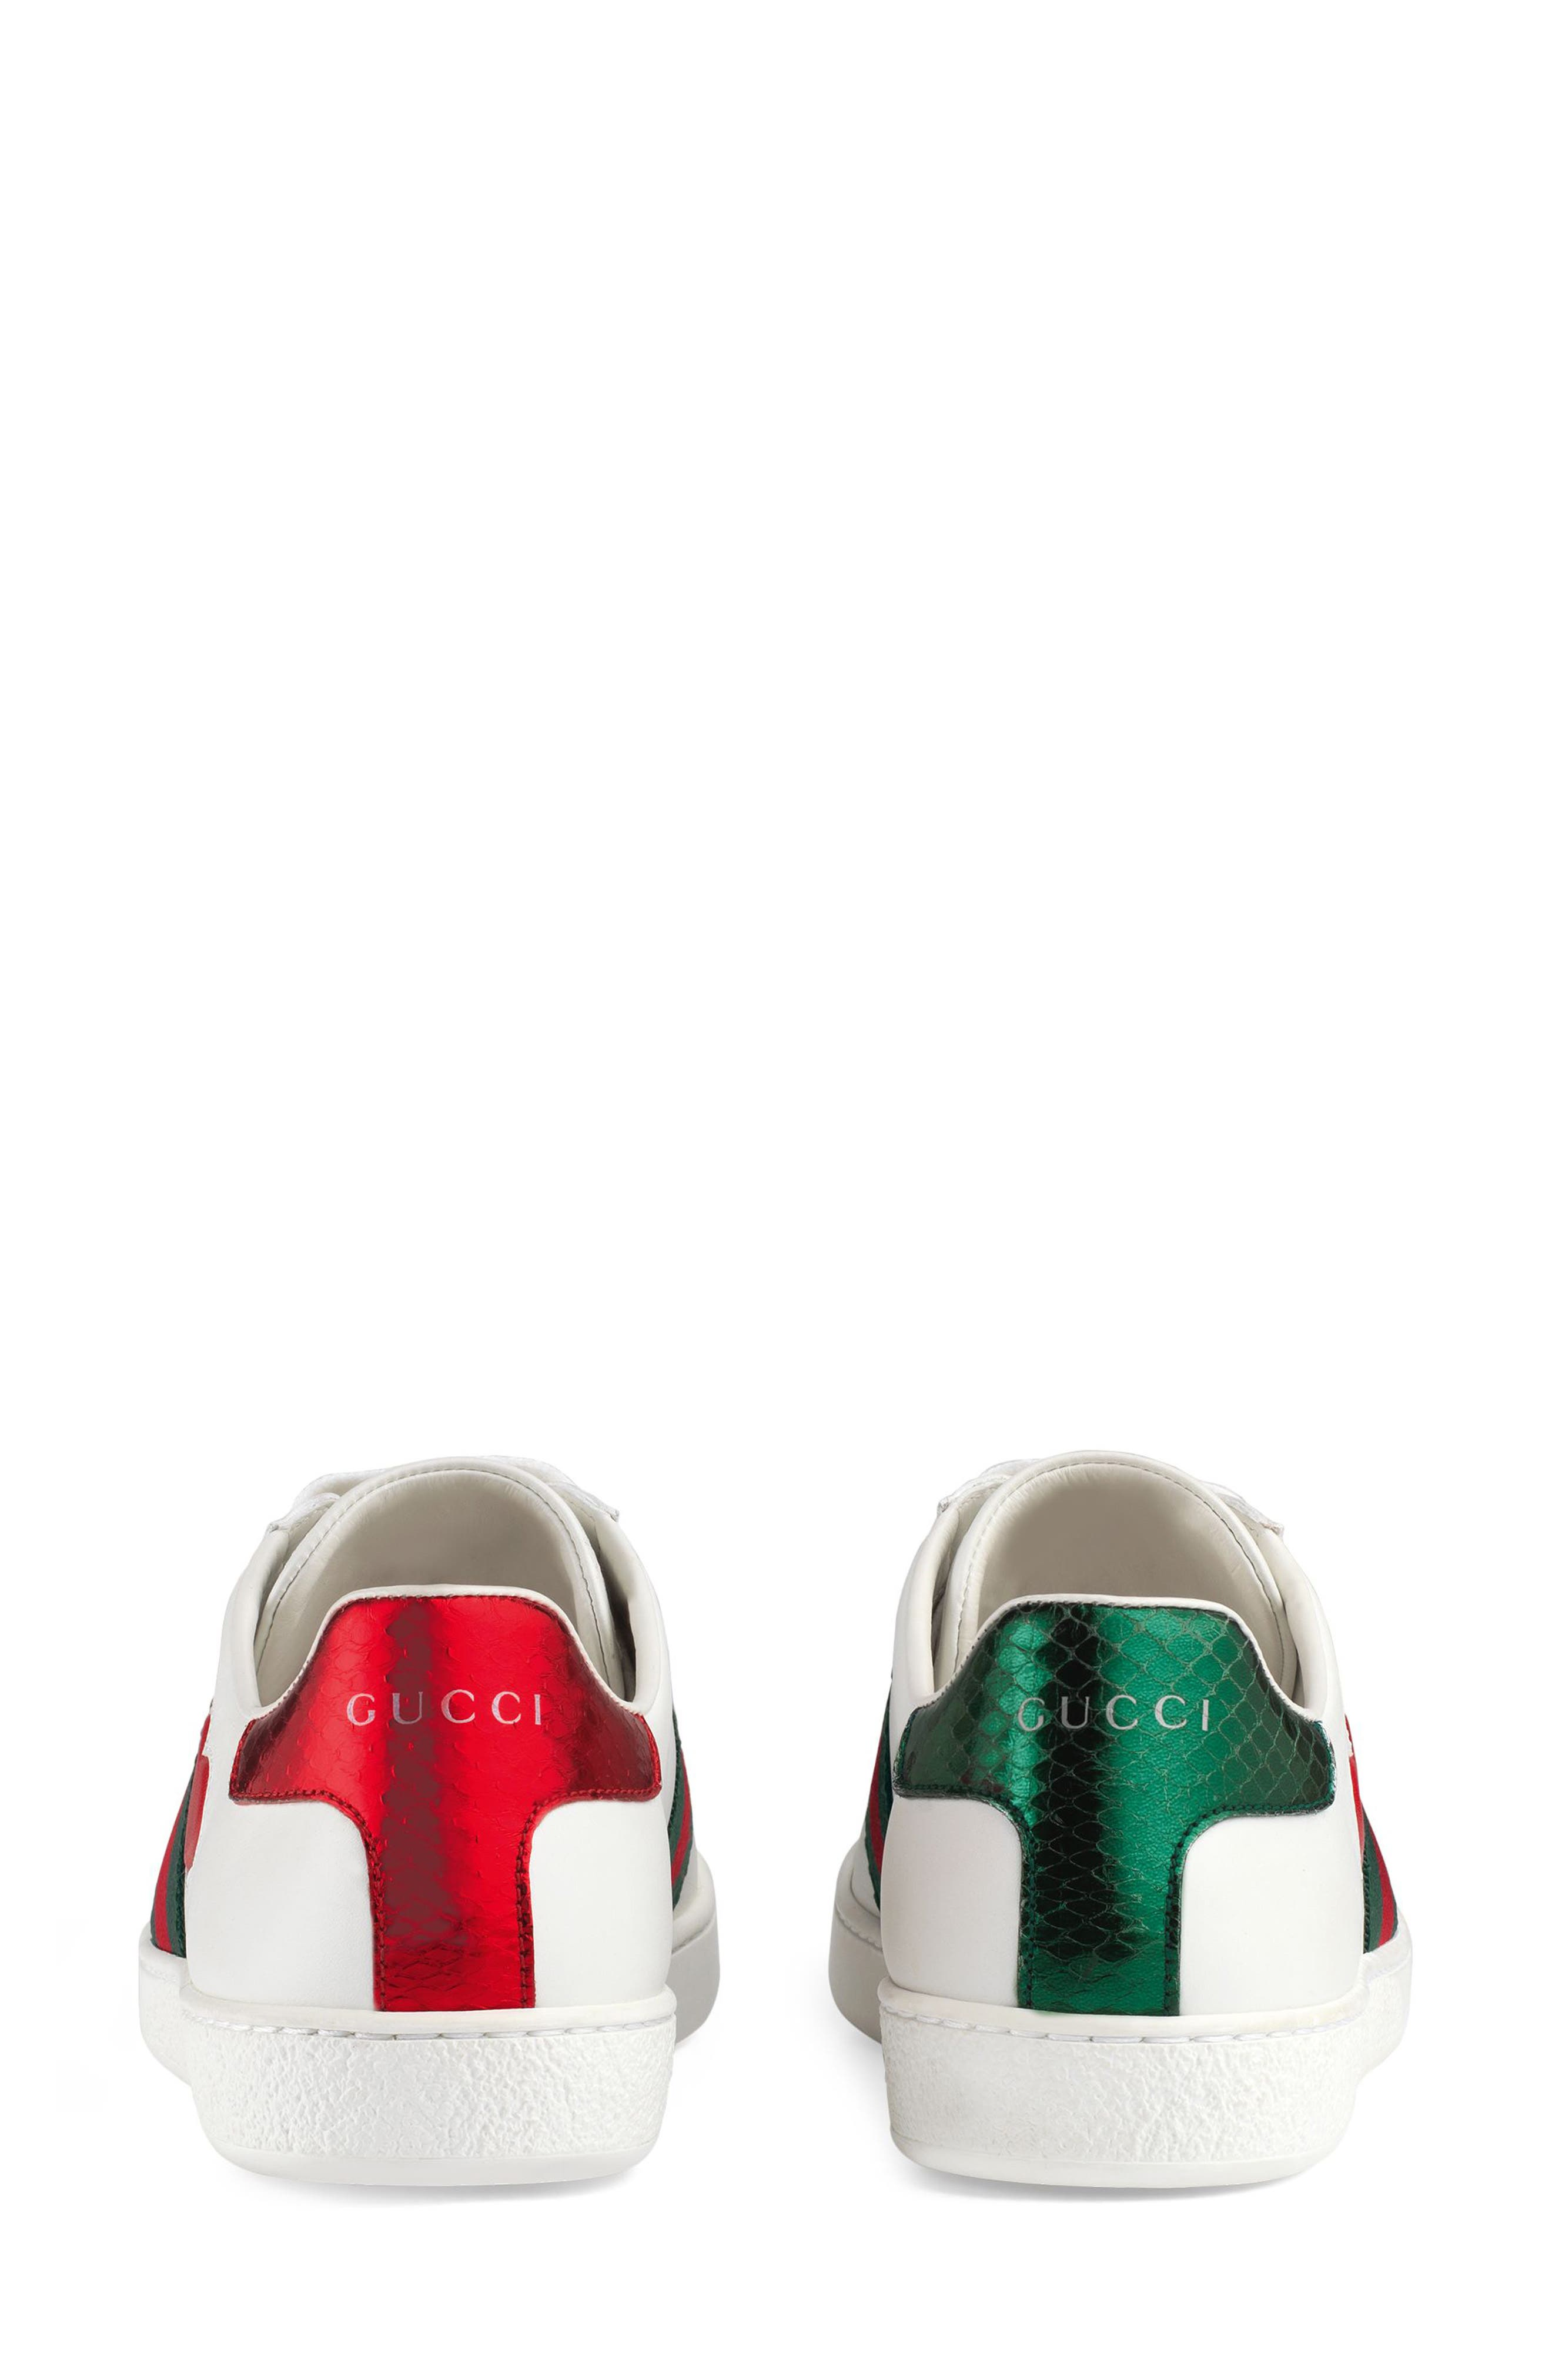 GUCCI,                             New Ace Heart Sneaker,                             Alternate thumbnail 5, color,                             138